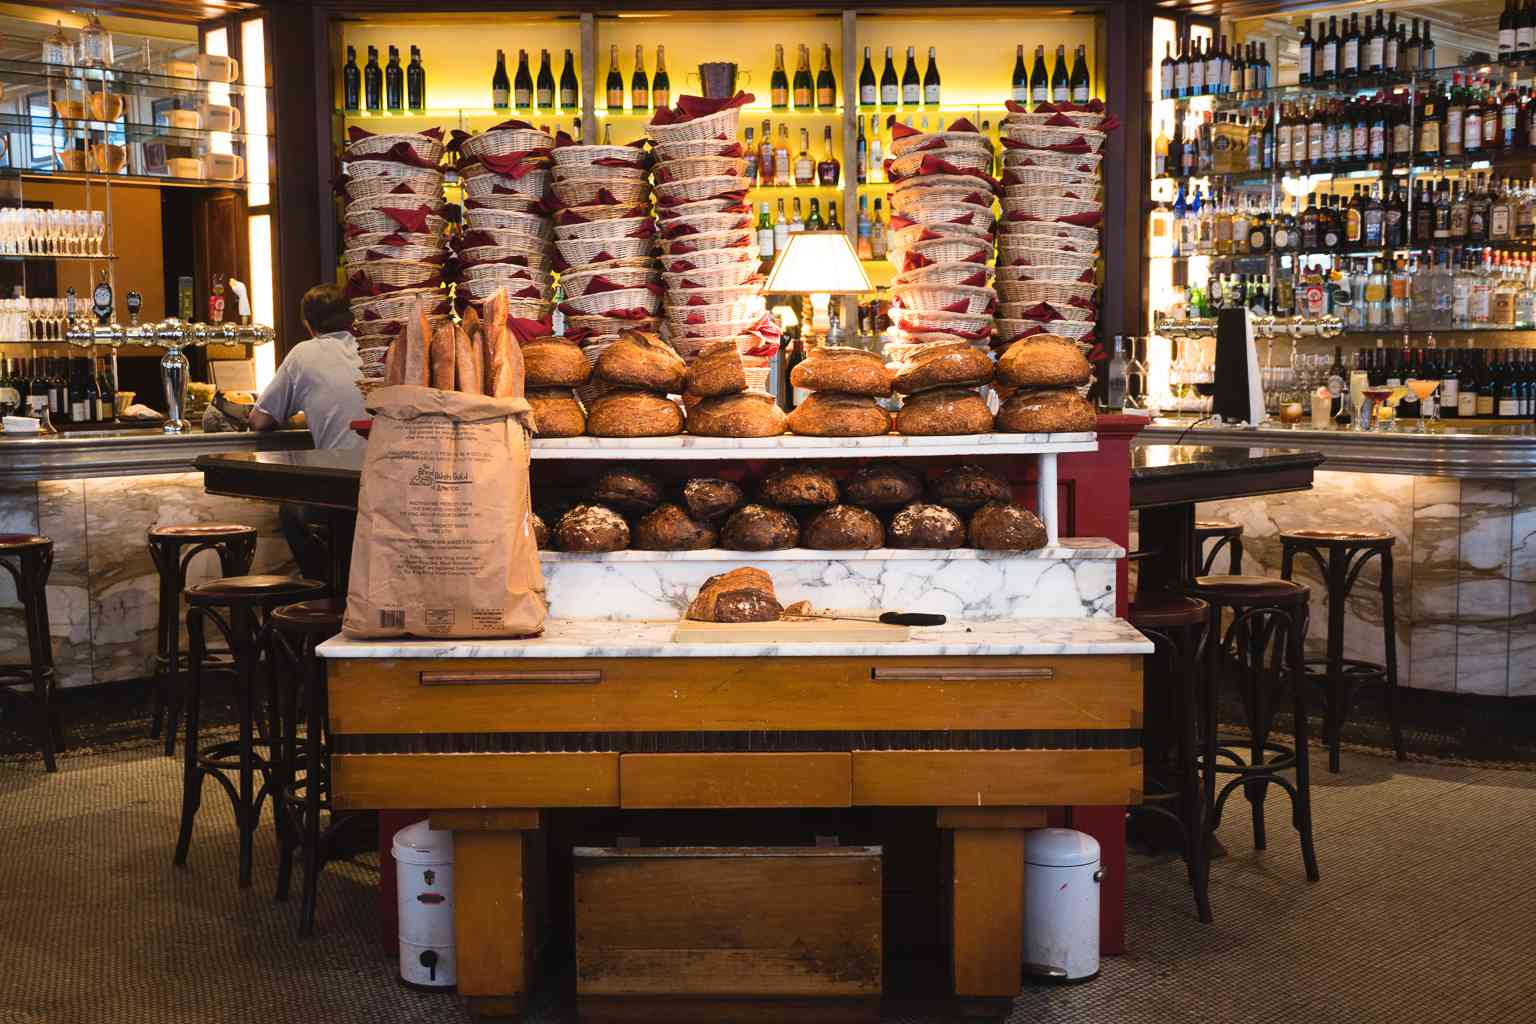 The bread counter at Le Diplomate